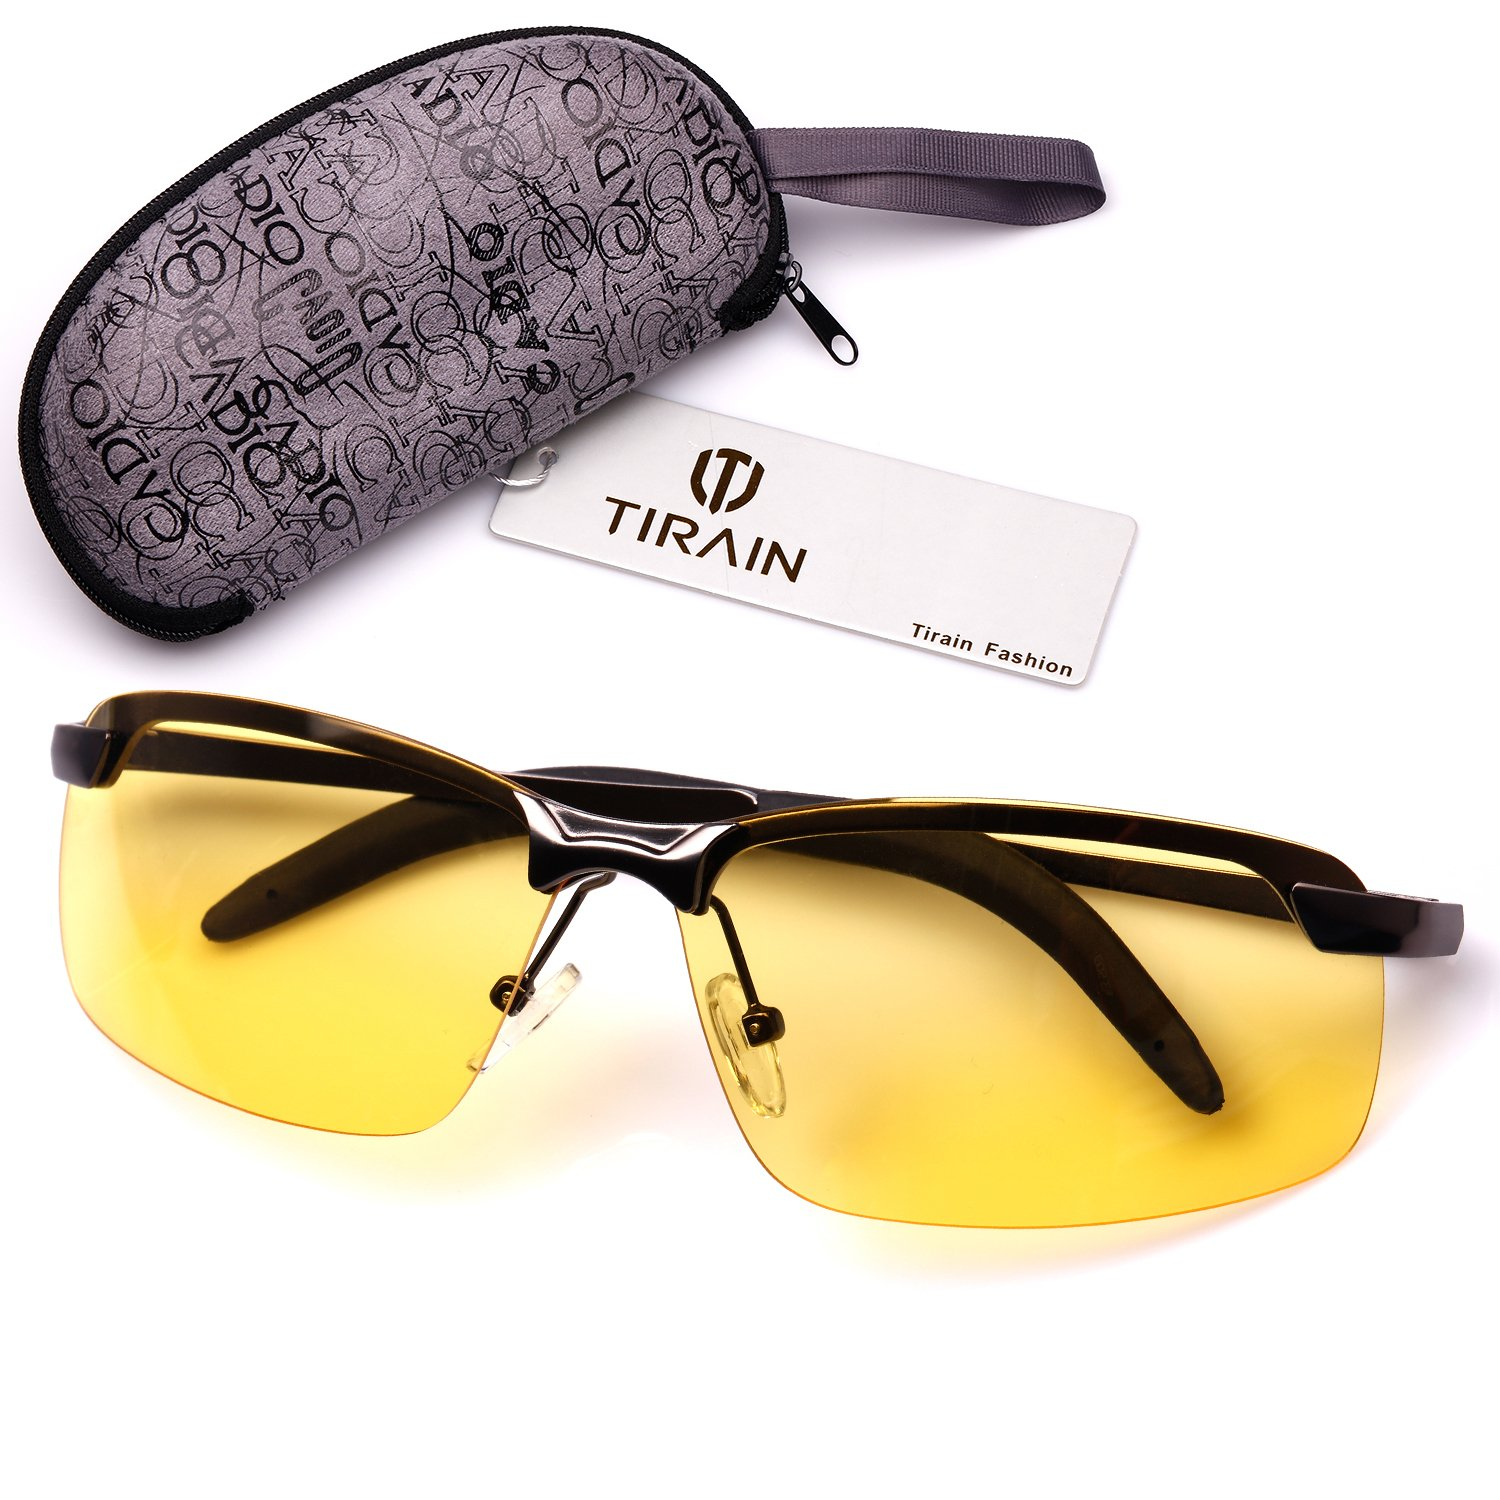 a368fb8729 Tirain Men Polarized Anti Glare Day and Night Vision Driving Glasses Yellow  Lens with Case